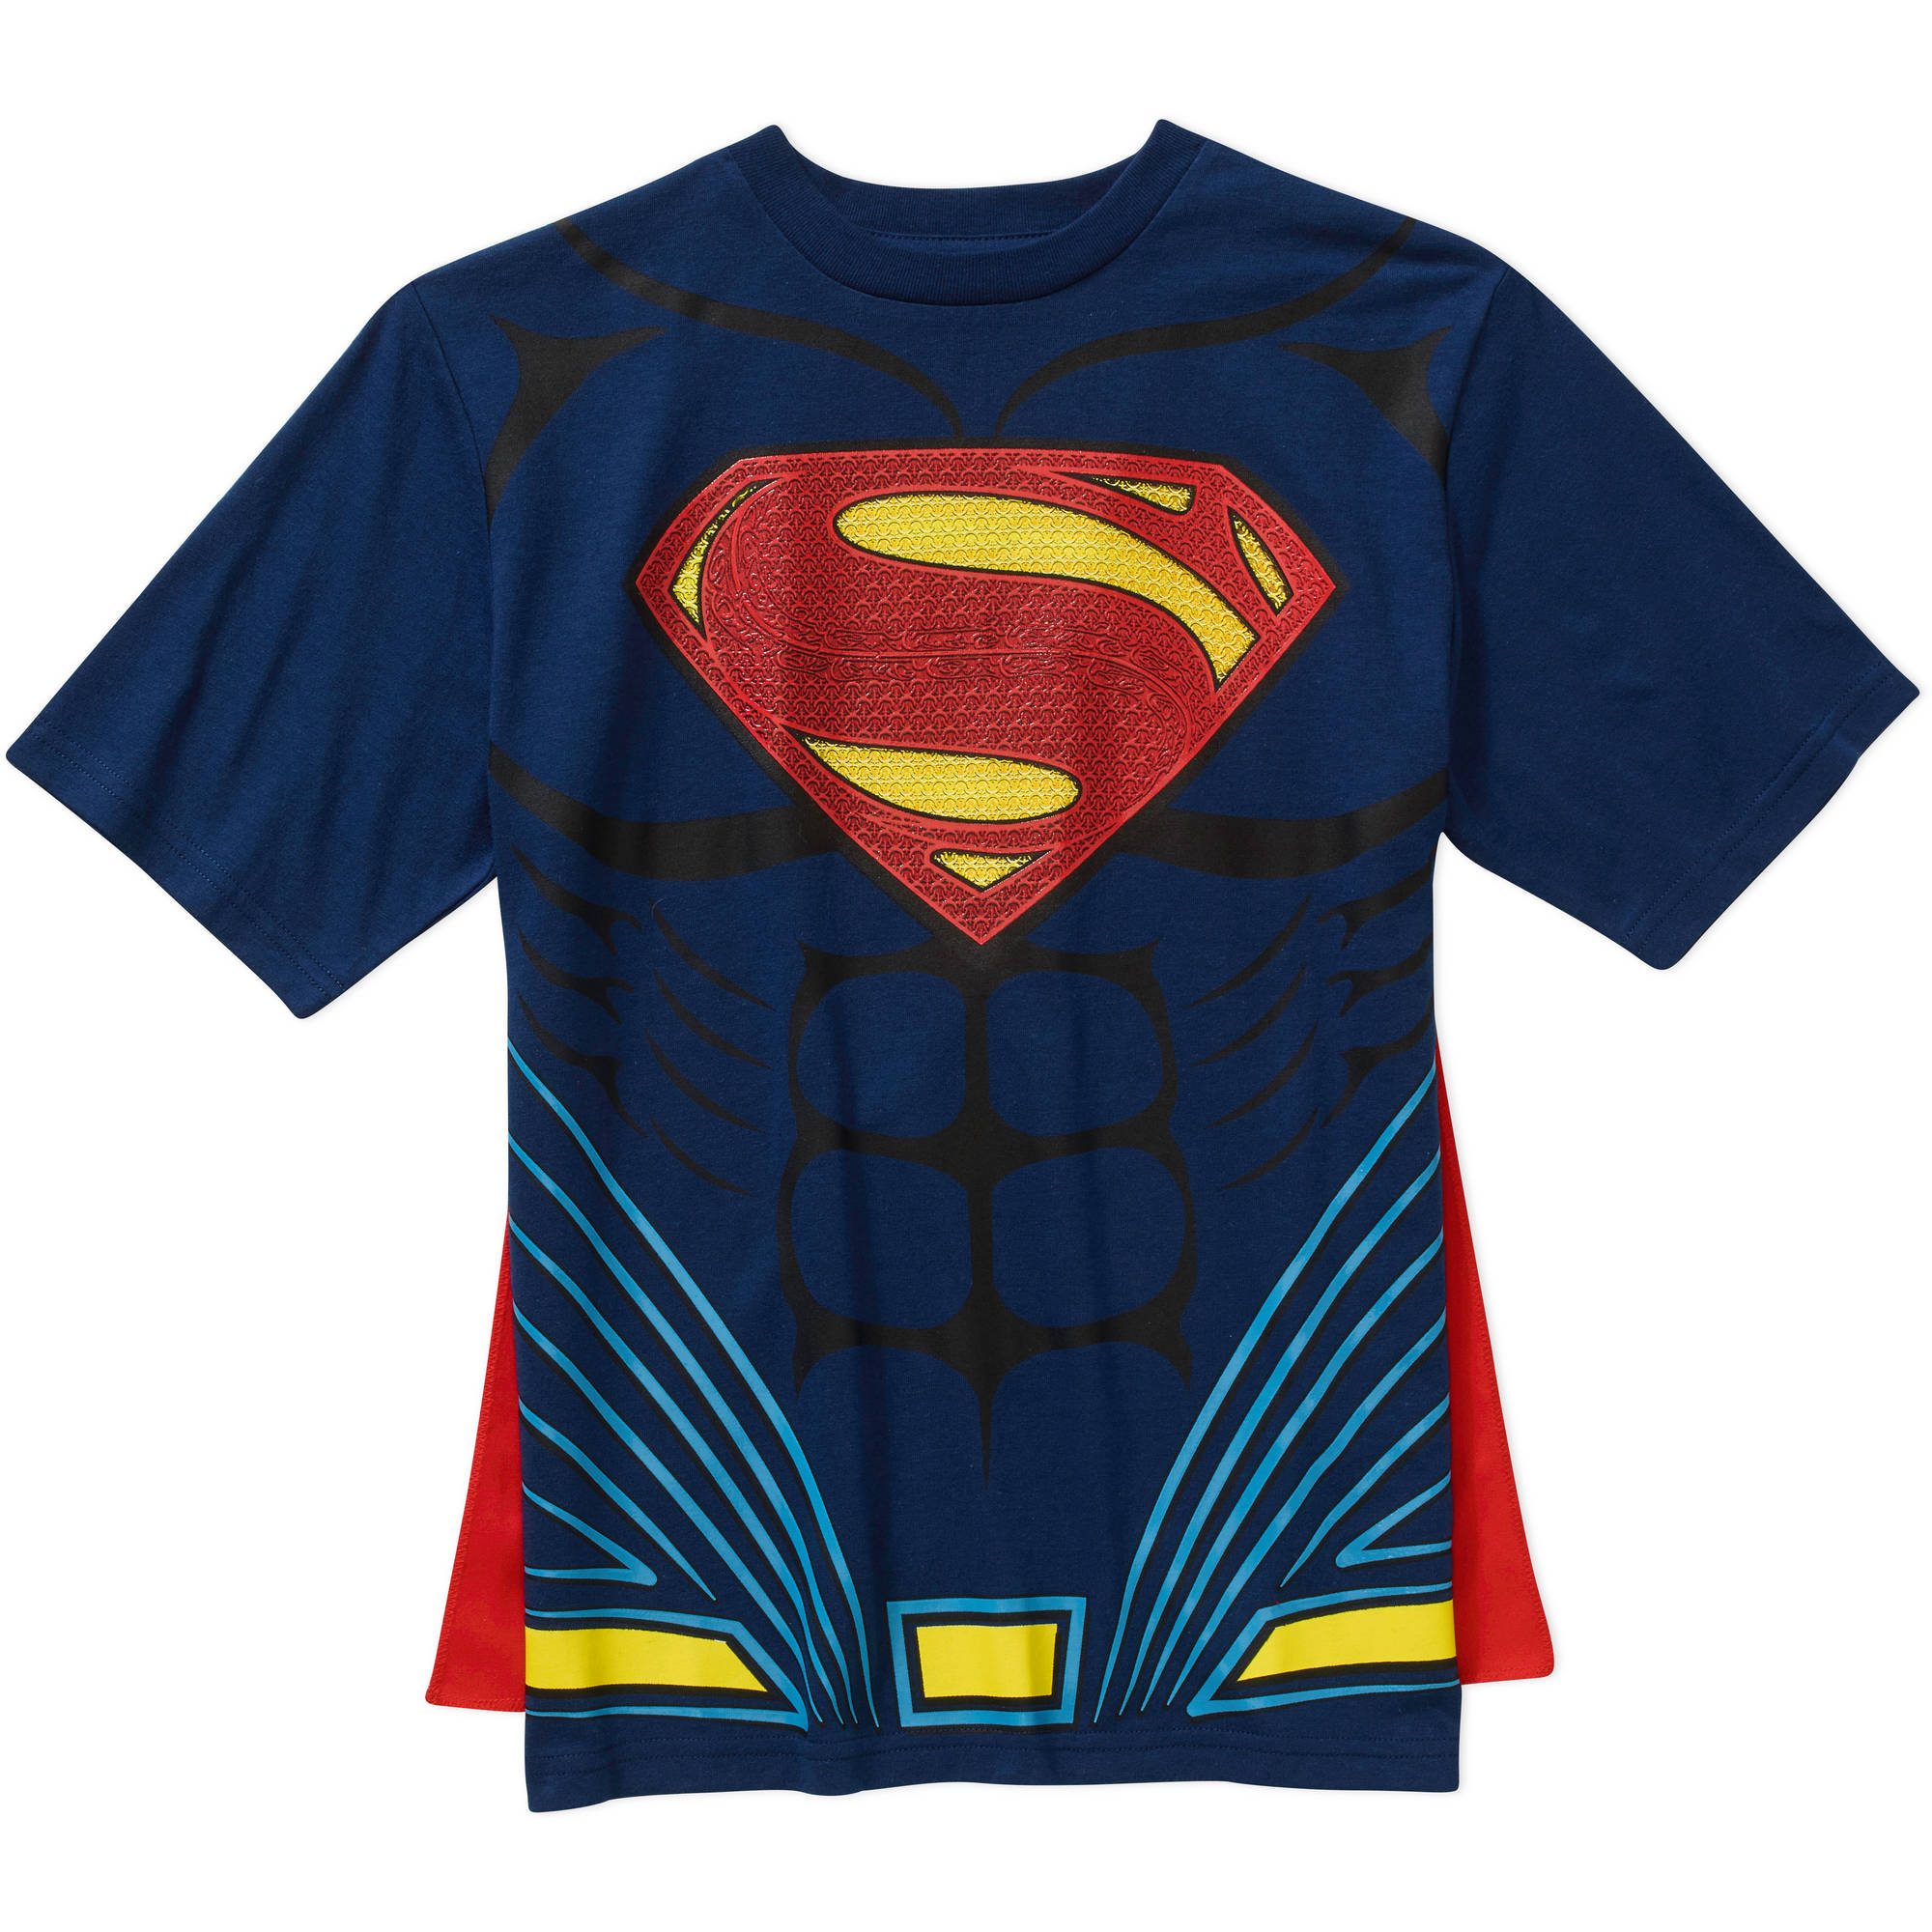 DC Comics Superman Boys Short Sleeve Cape Graphic Tee